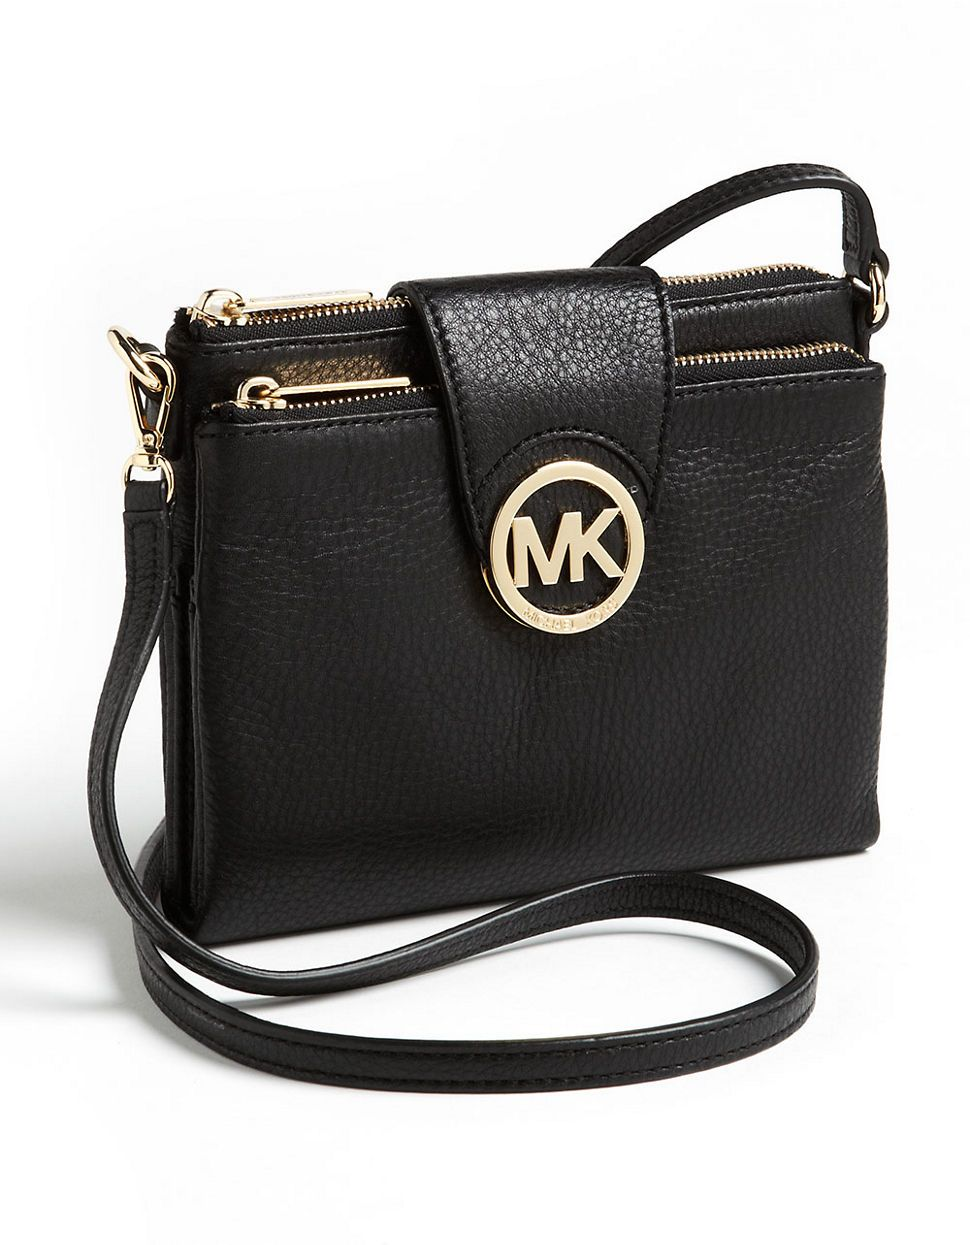 8c399502d1fe Michael Michael Kors Fulton Crossbody Bag Black | Women's Fashion ...